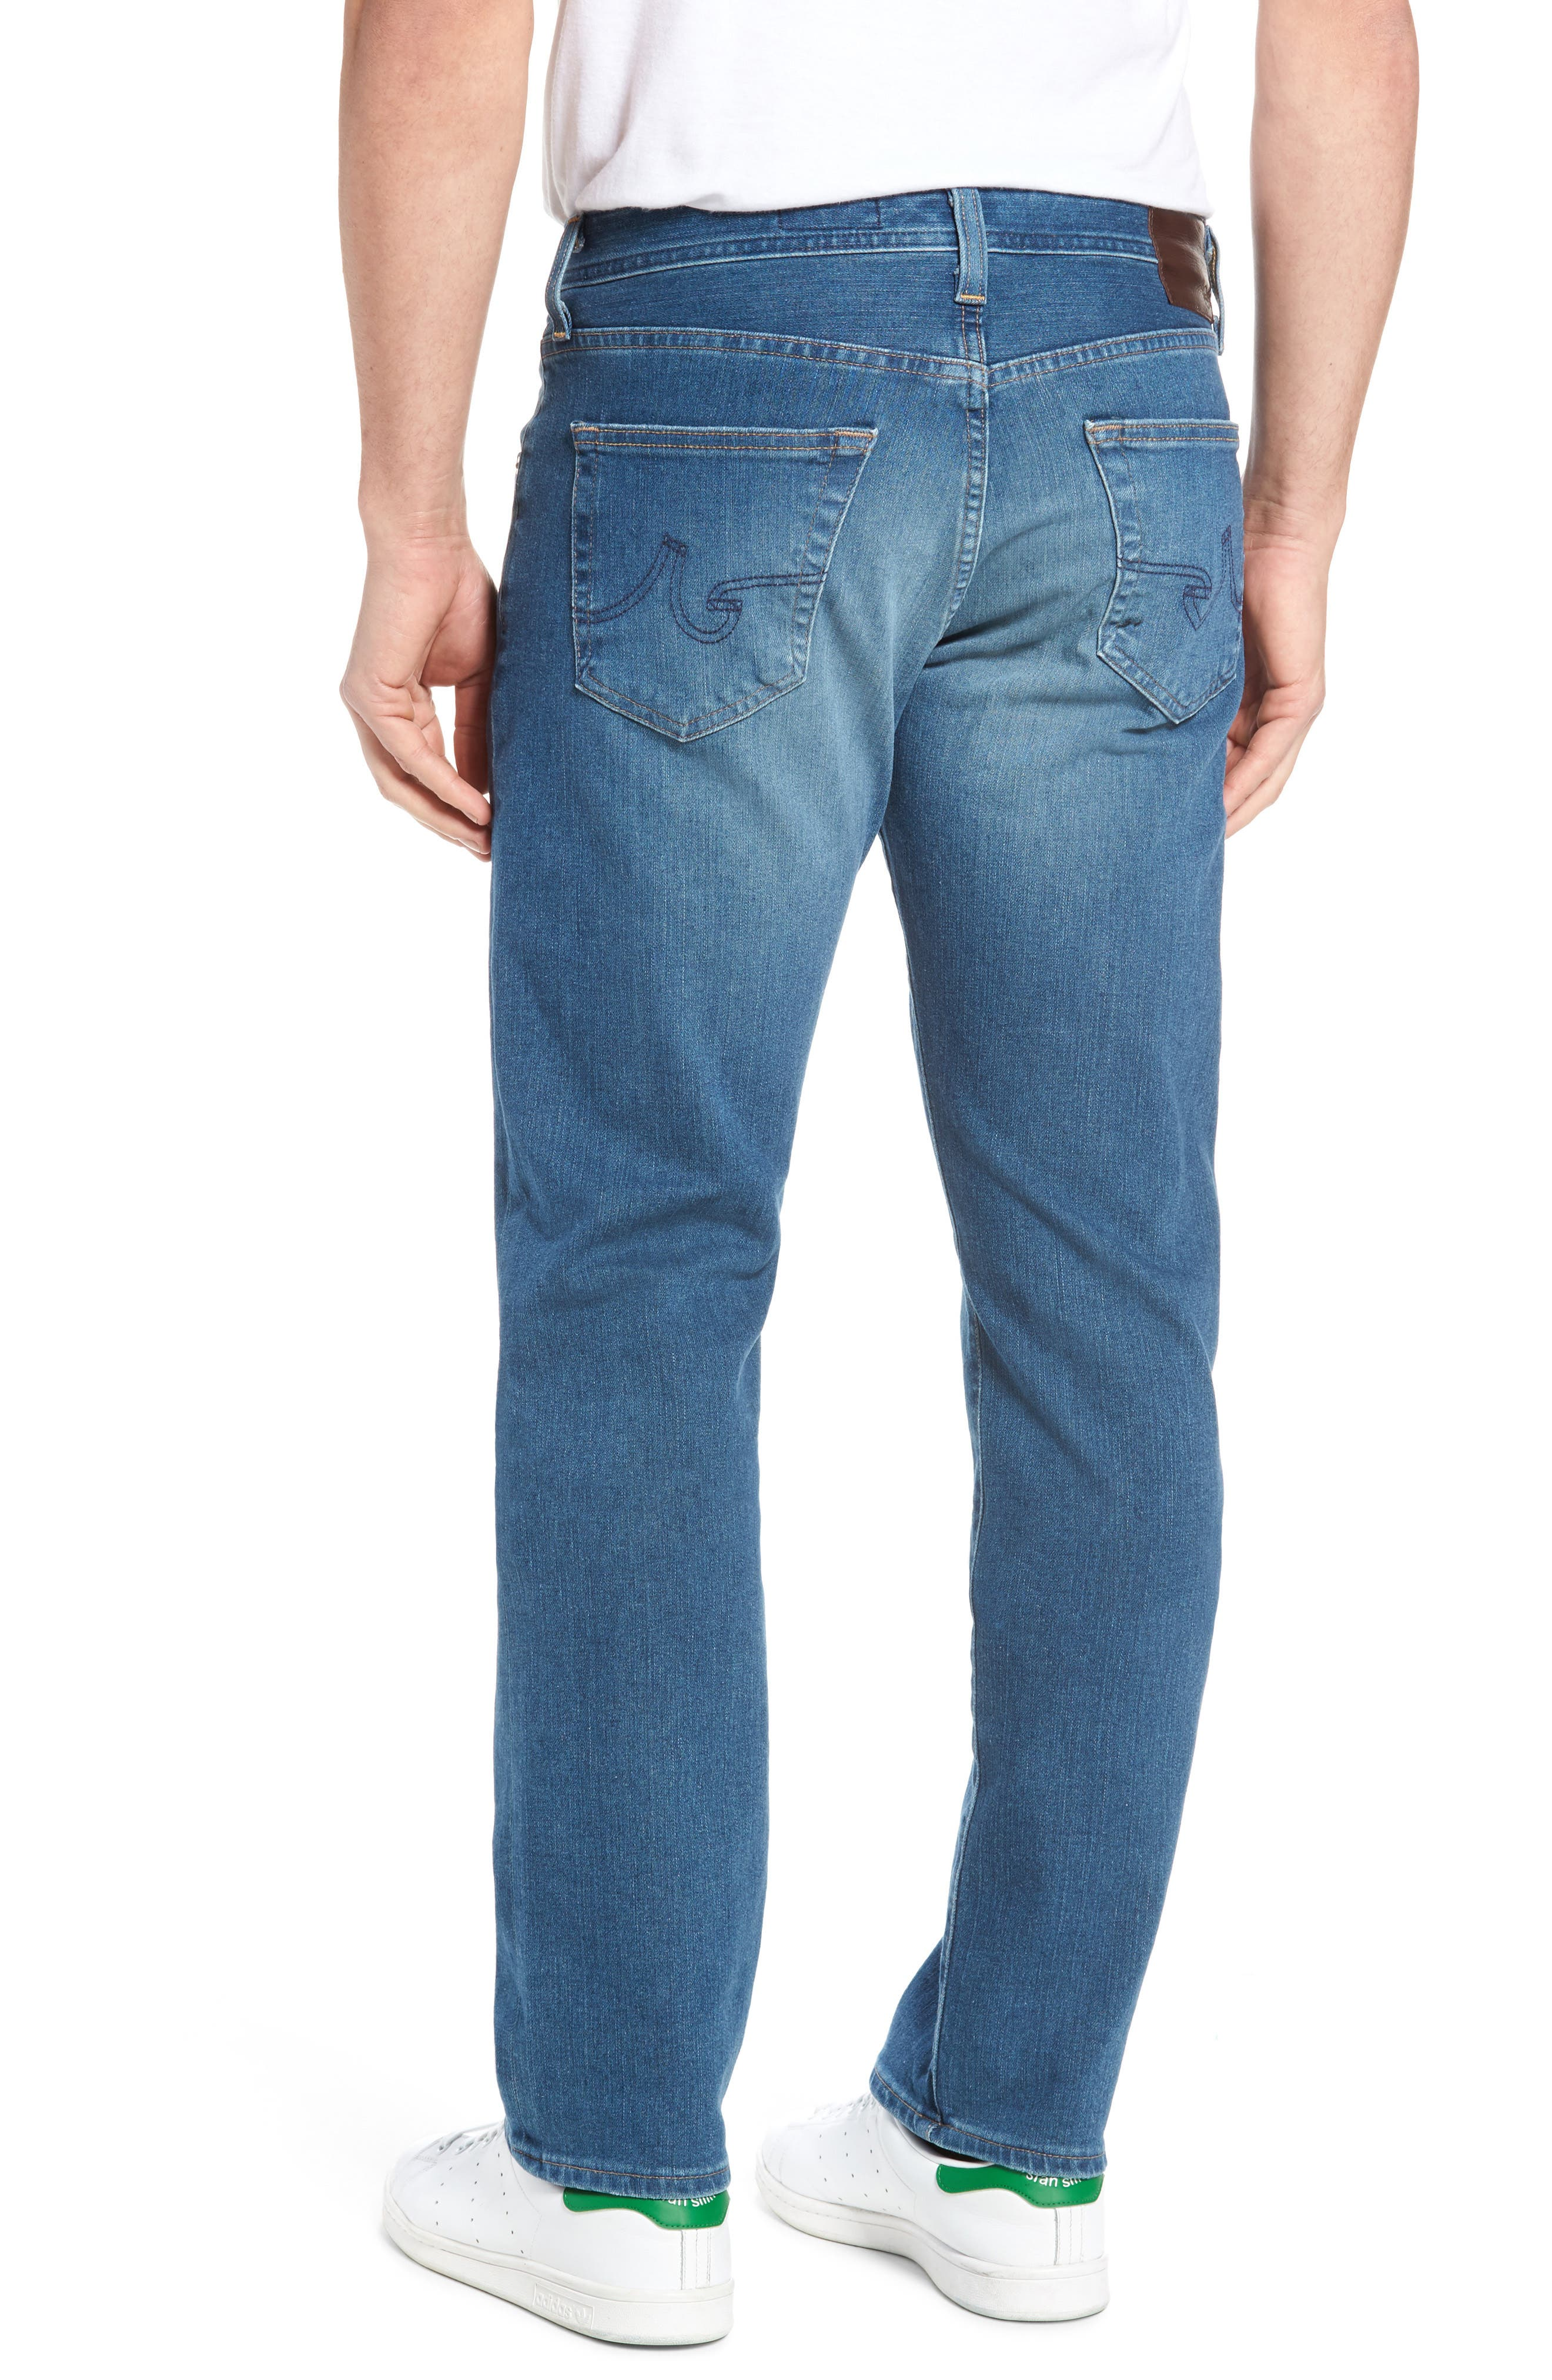 Graduate Slim Straight Fit Jeans,                             Alternate thumbnail 2, color,                             Typewriter